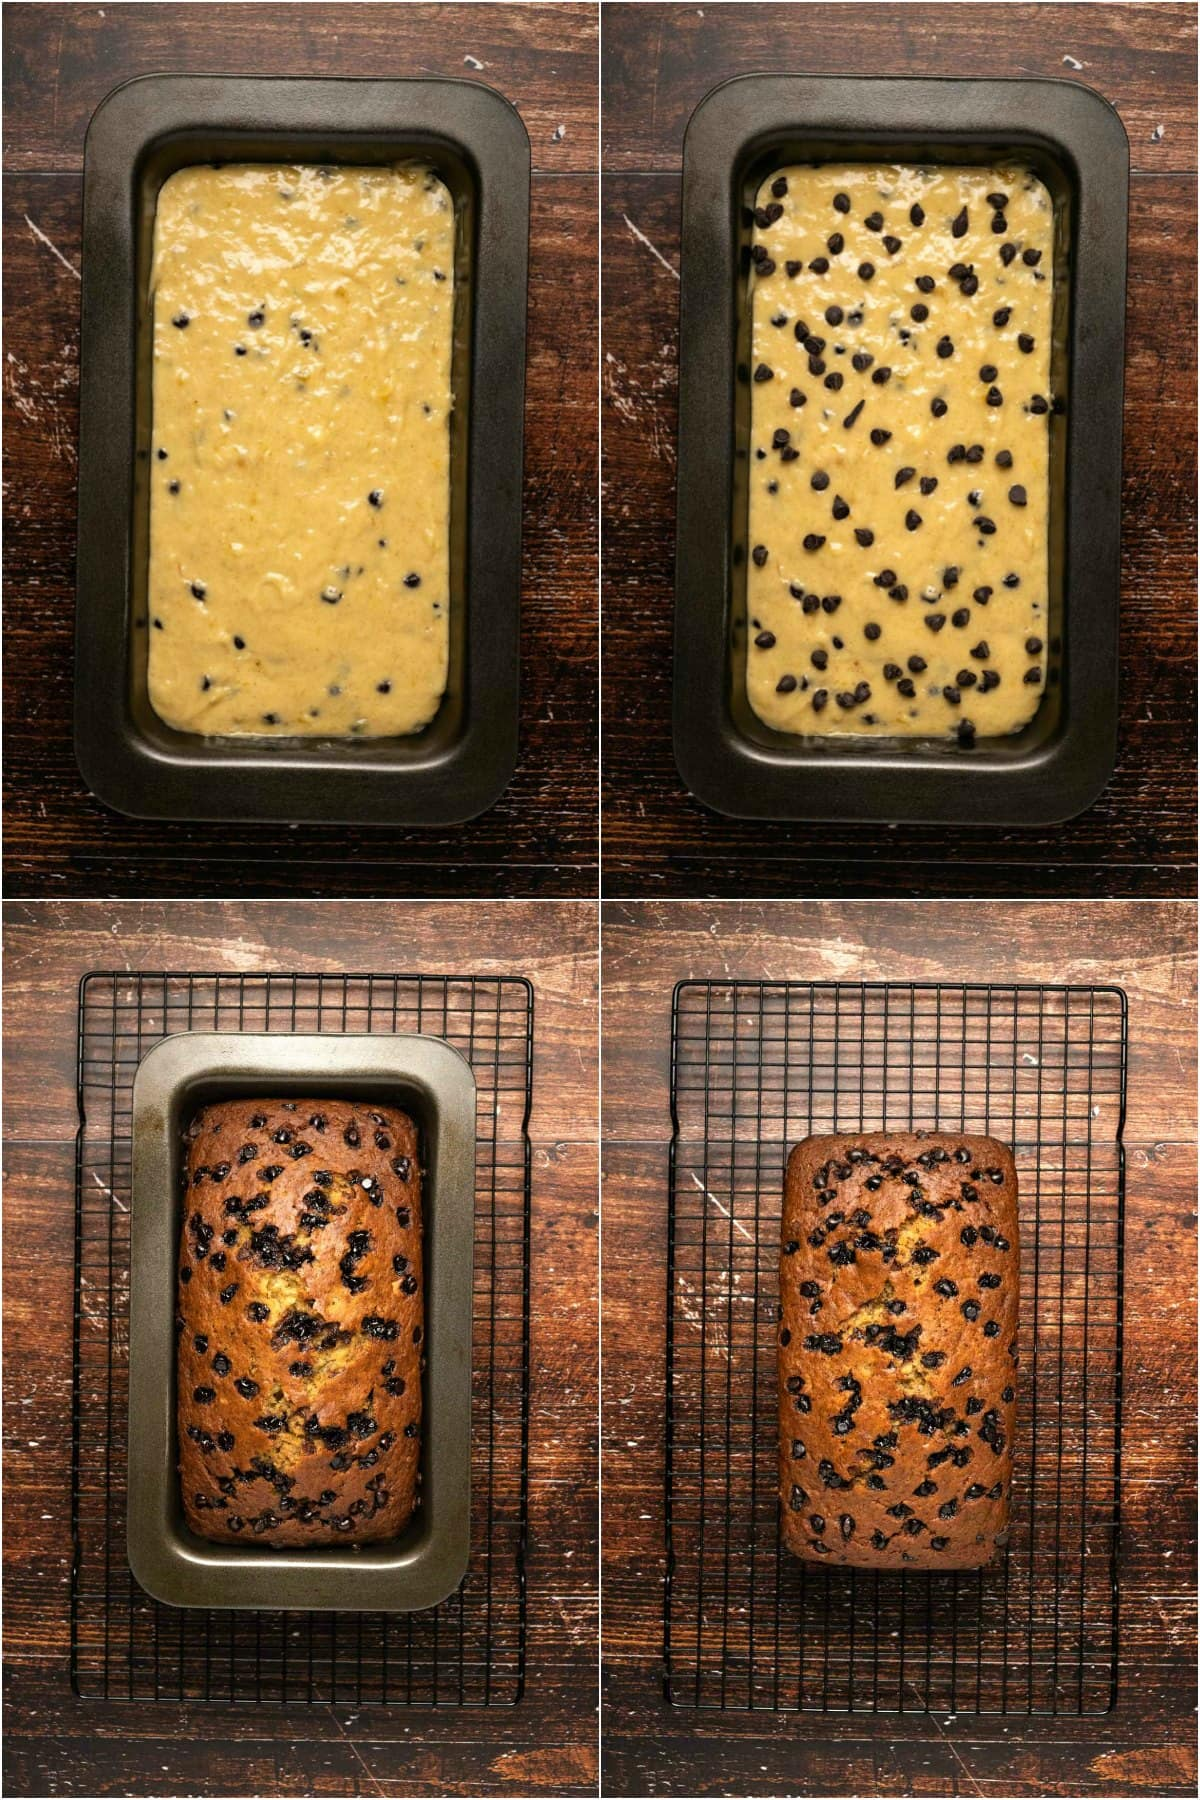 Step by step process photo collage of making chocolate chip banana bread.